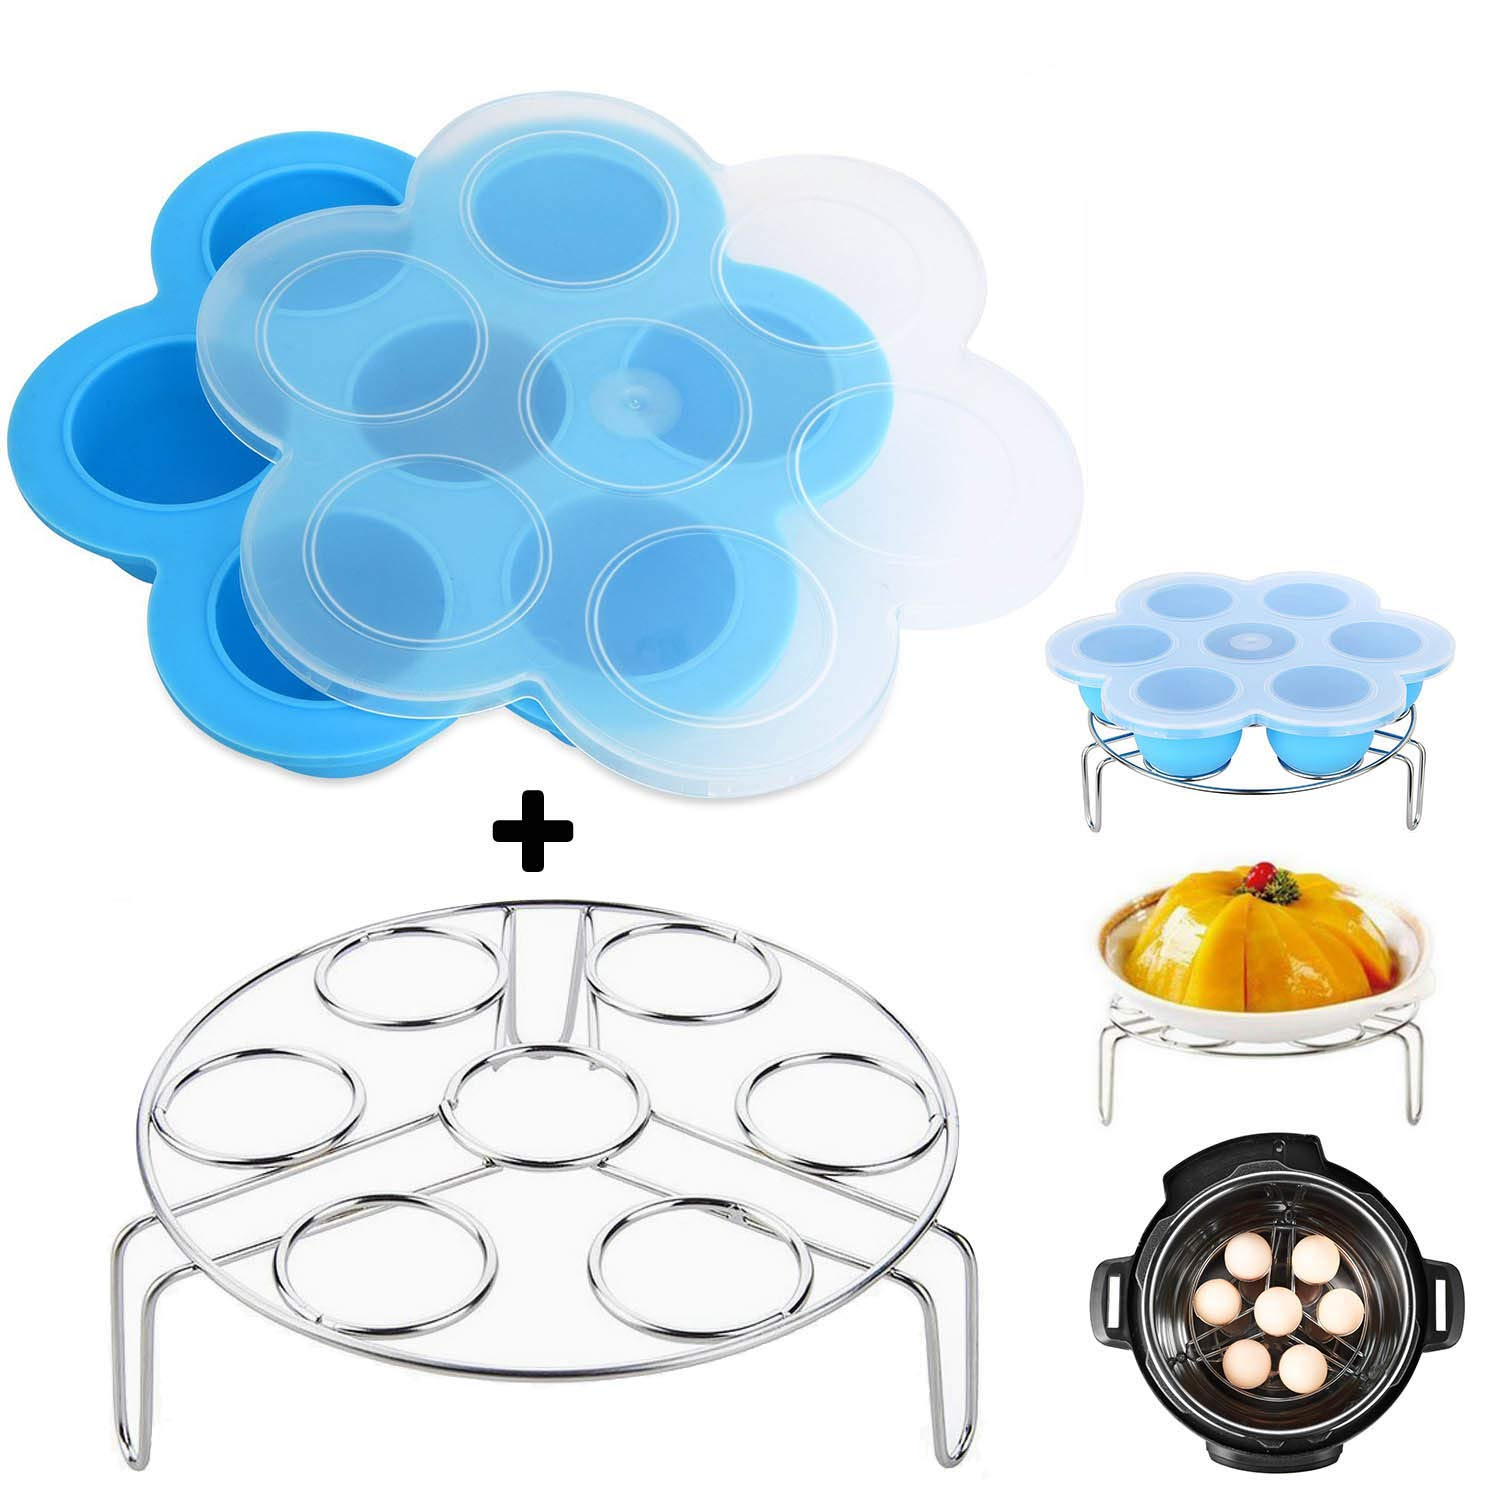 Vencer One Blue Silicone Egg Bites Molds With One Stainless Steel Egg Steamer Rack For Instant Pot Accessories/Pressure Cooker Food Steamer and Reusable Storage Container,2 Pack,VSO-008